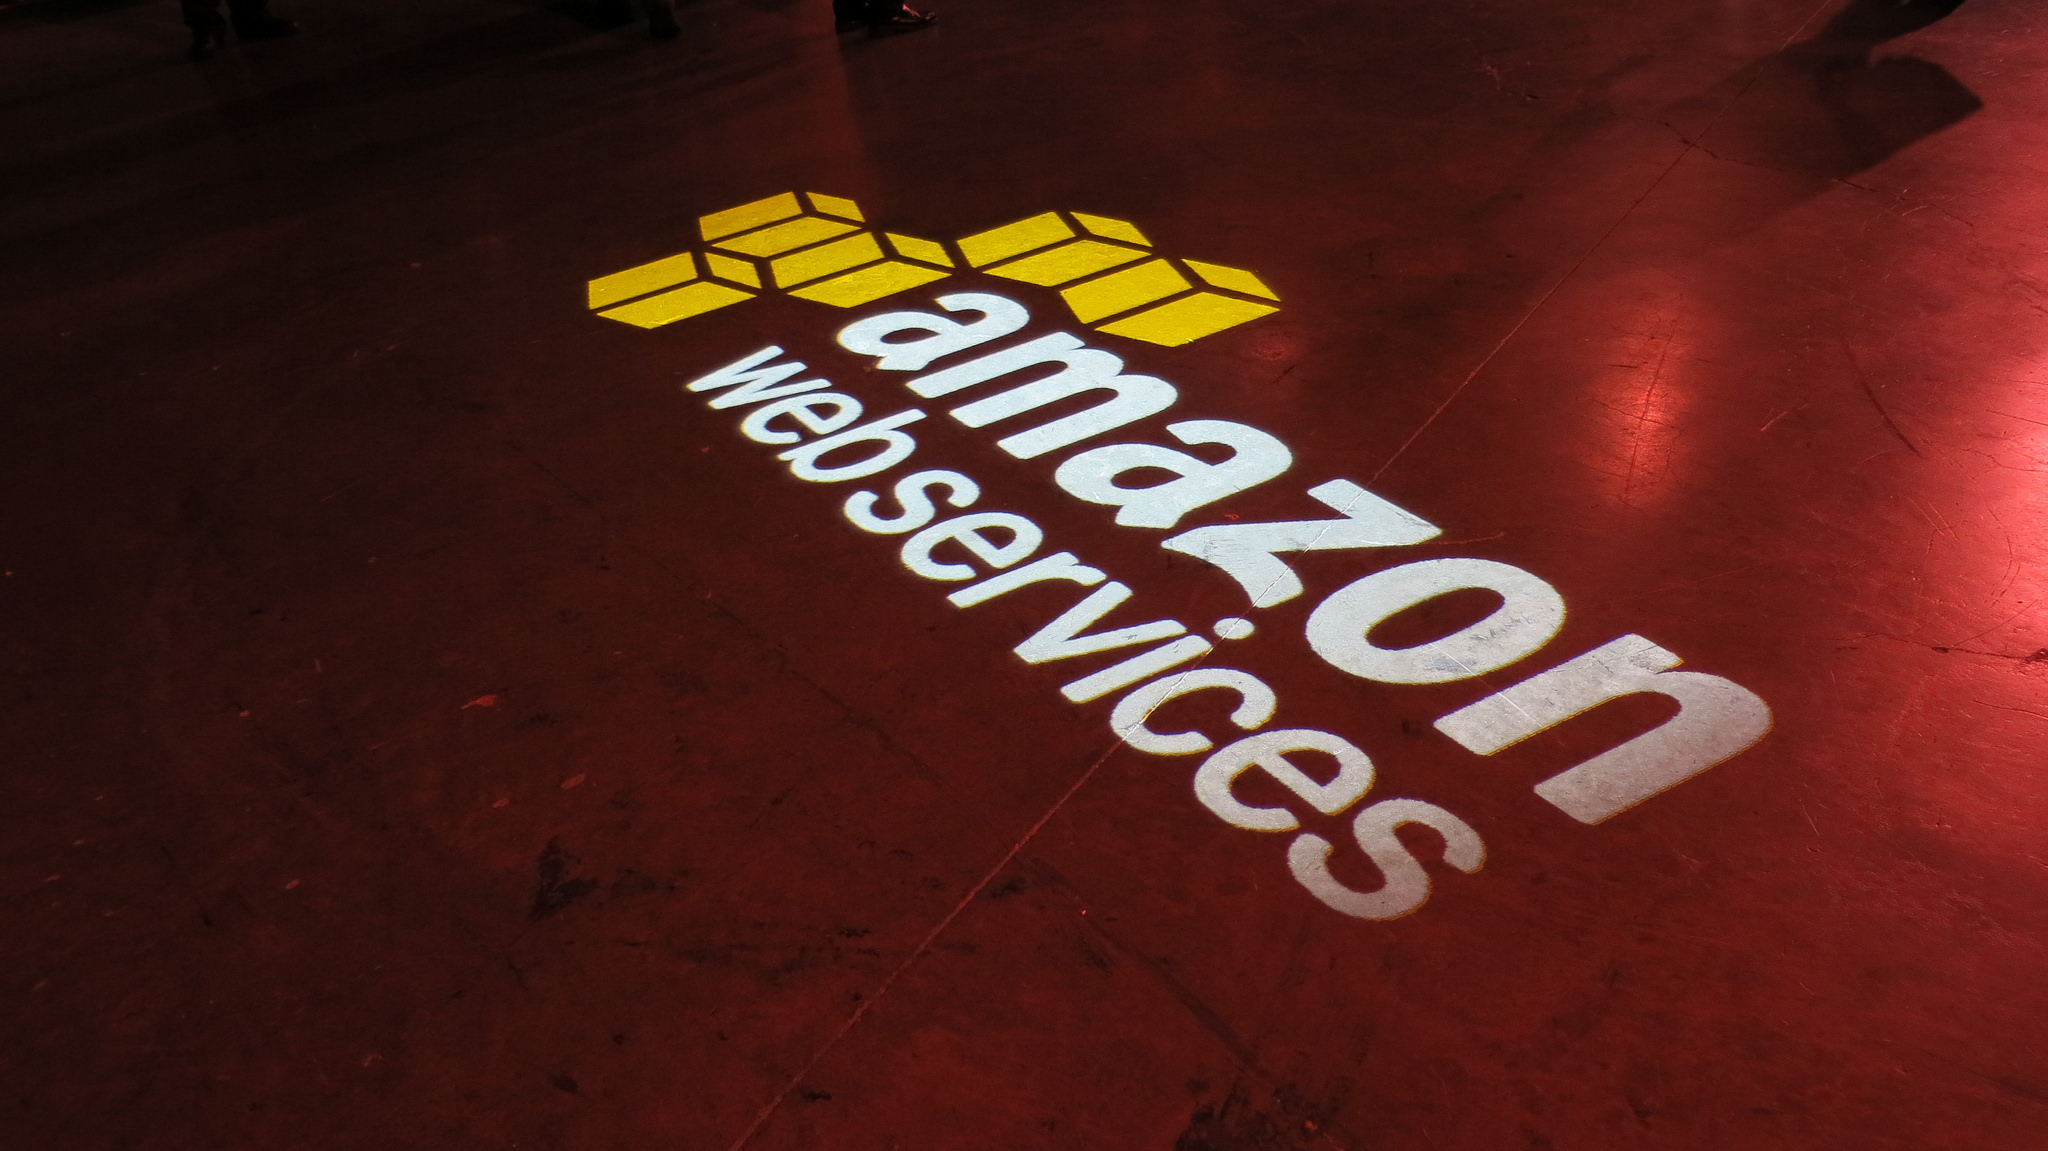 AWS just proved why standards drive technology platforms